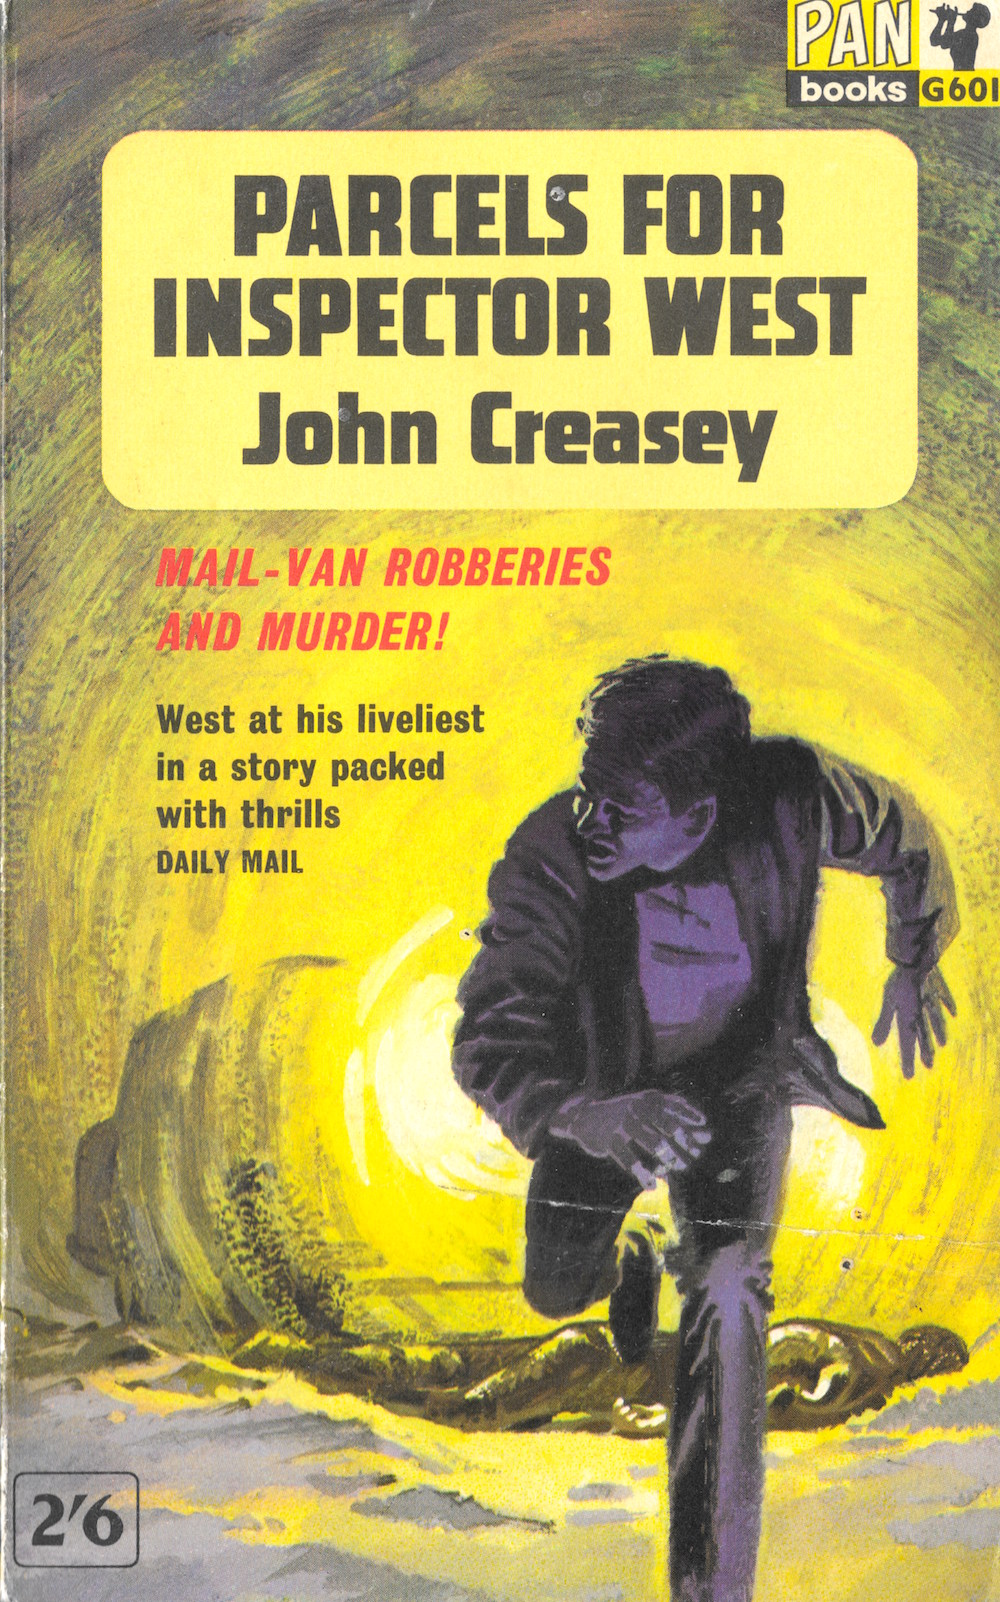 John Creasey, Inspector West, crime, books